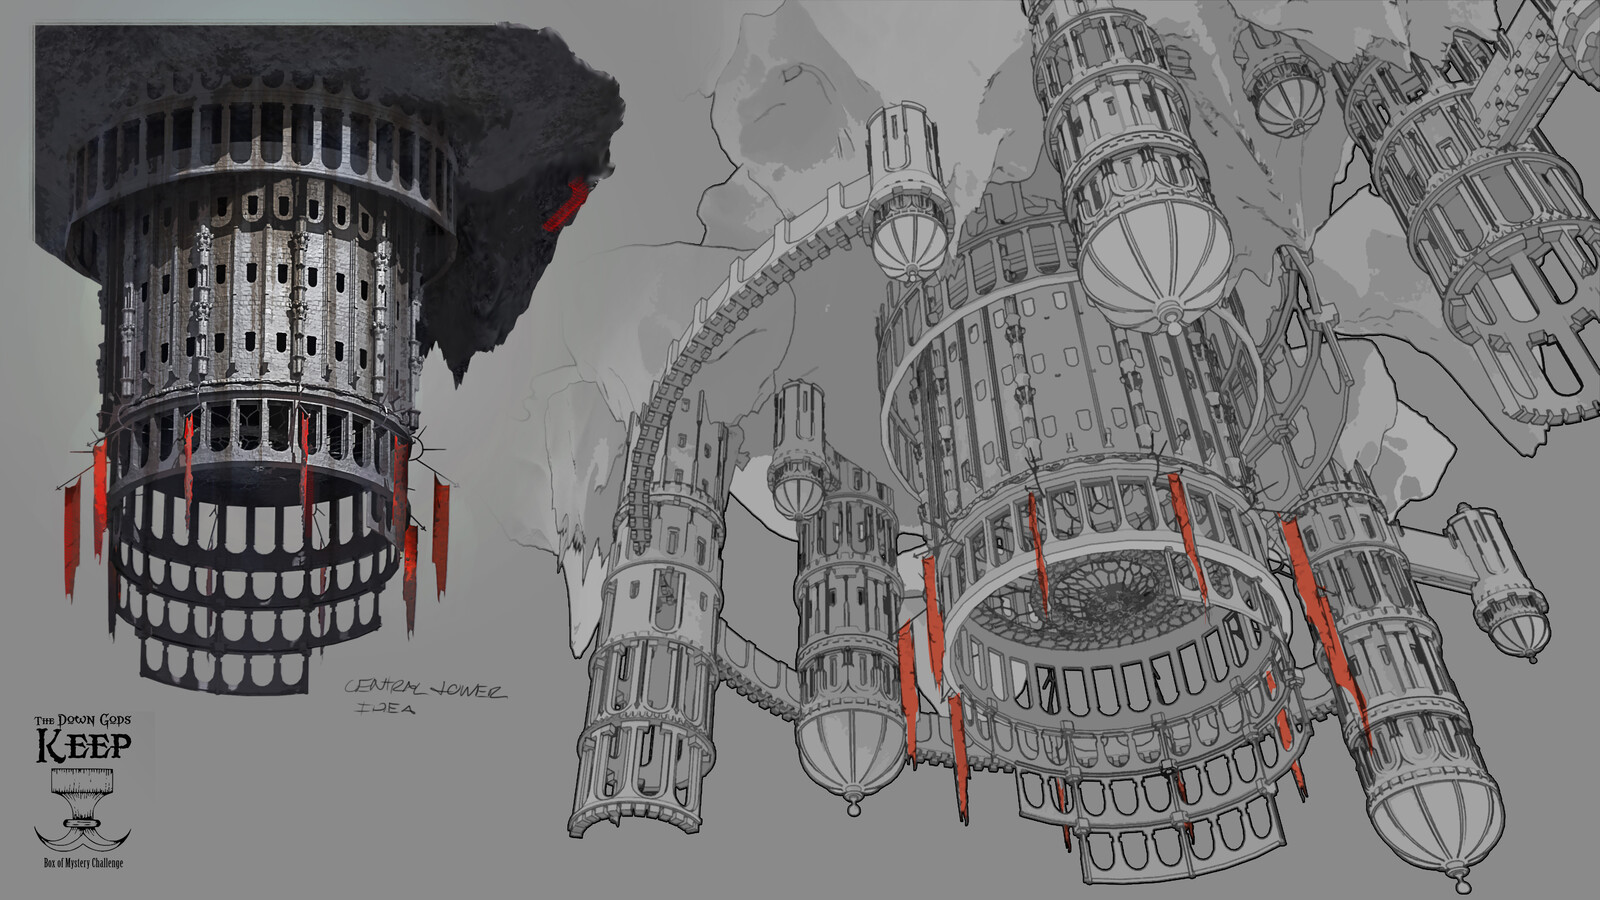 Composition sketches and callouts